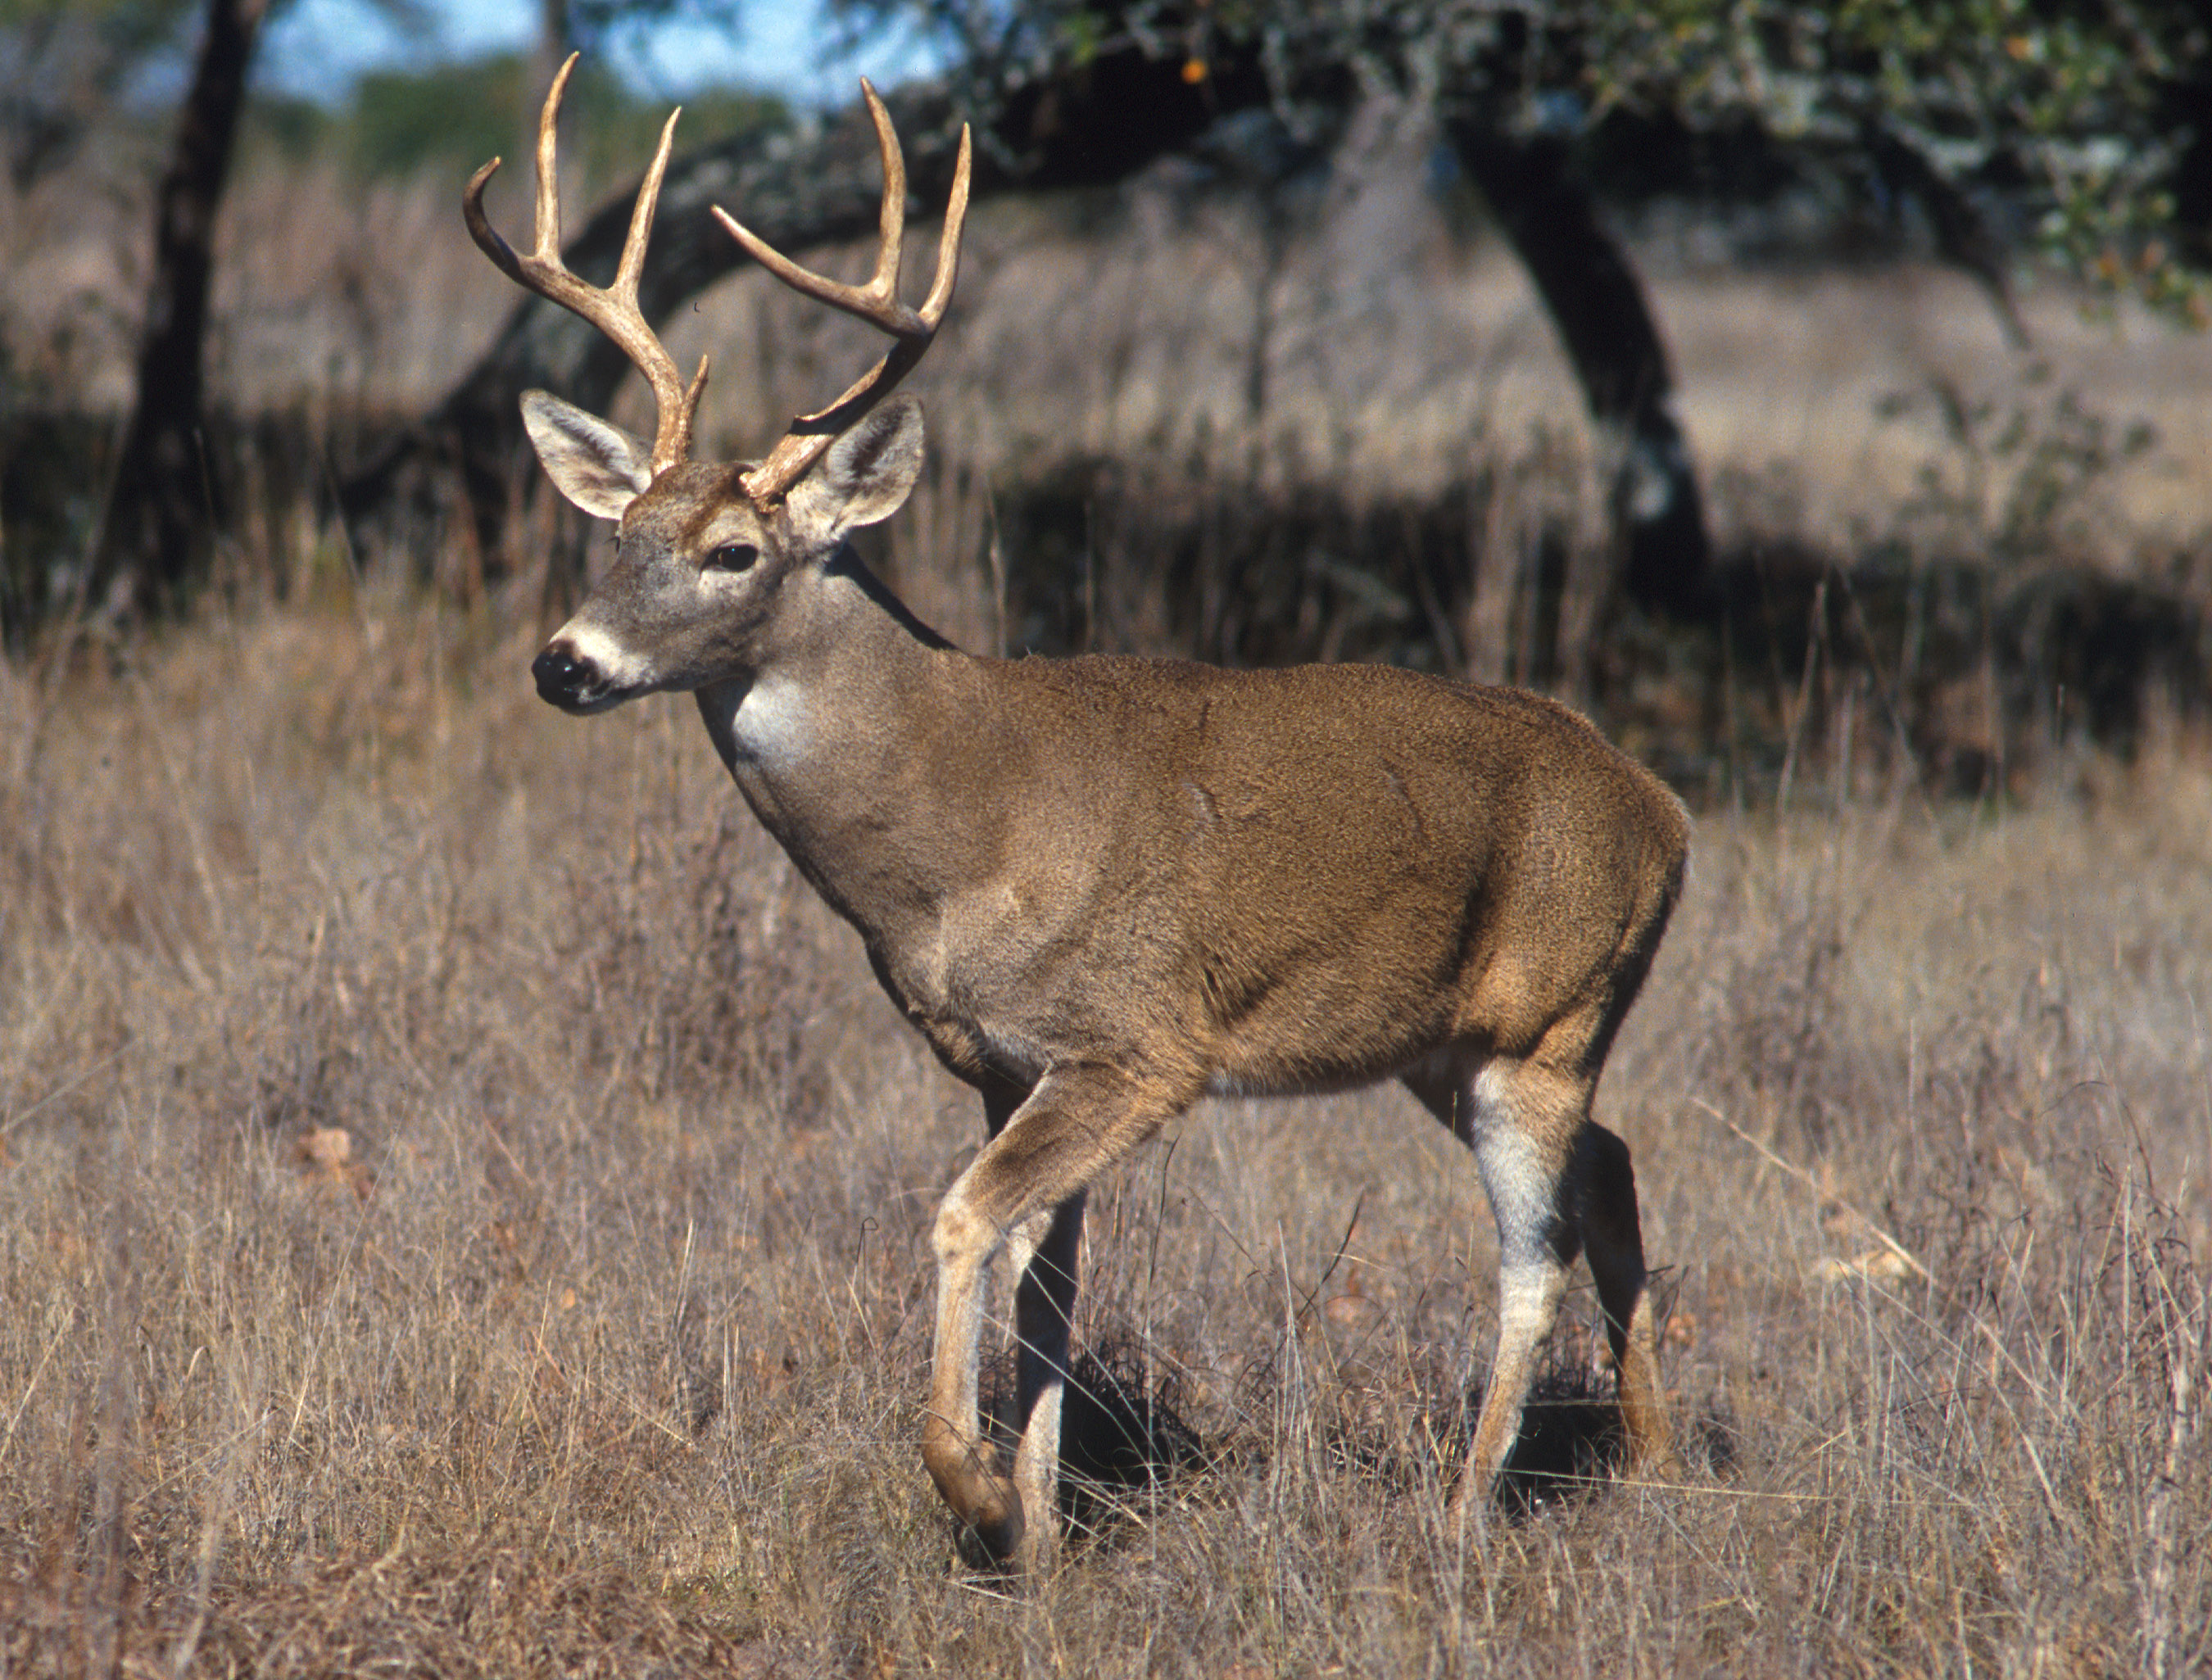 File:White-tailed deer.jpg - Wikipedia